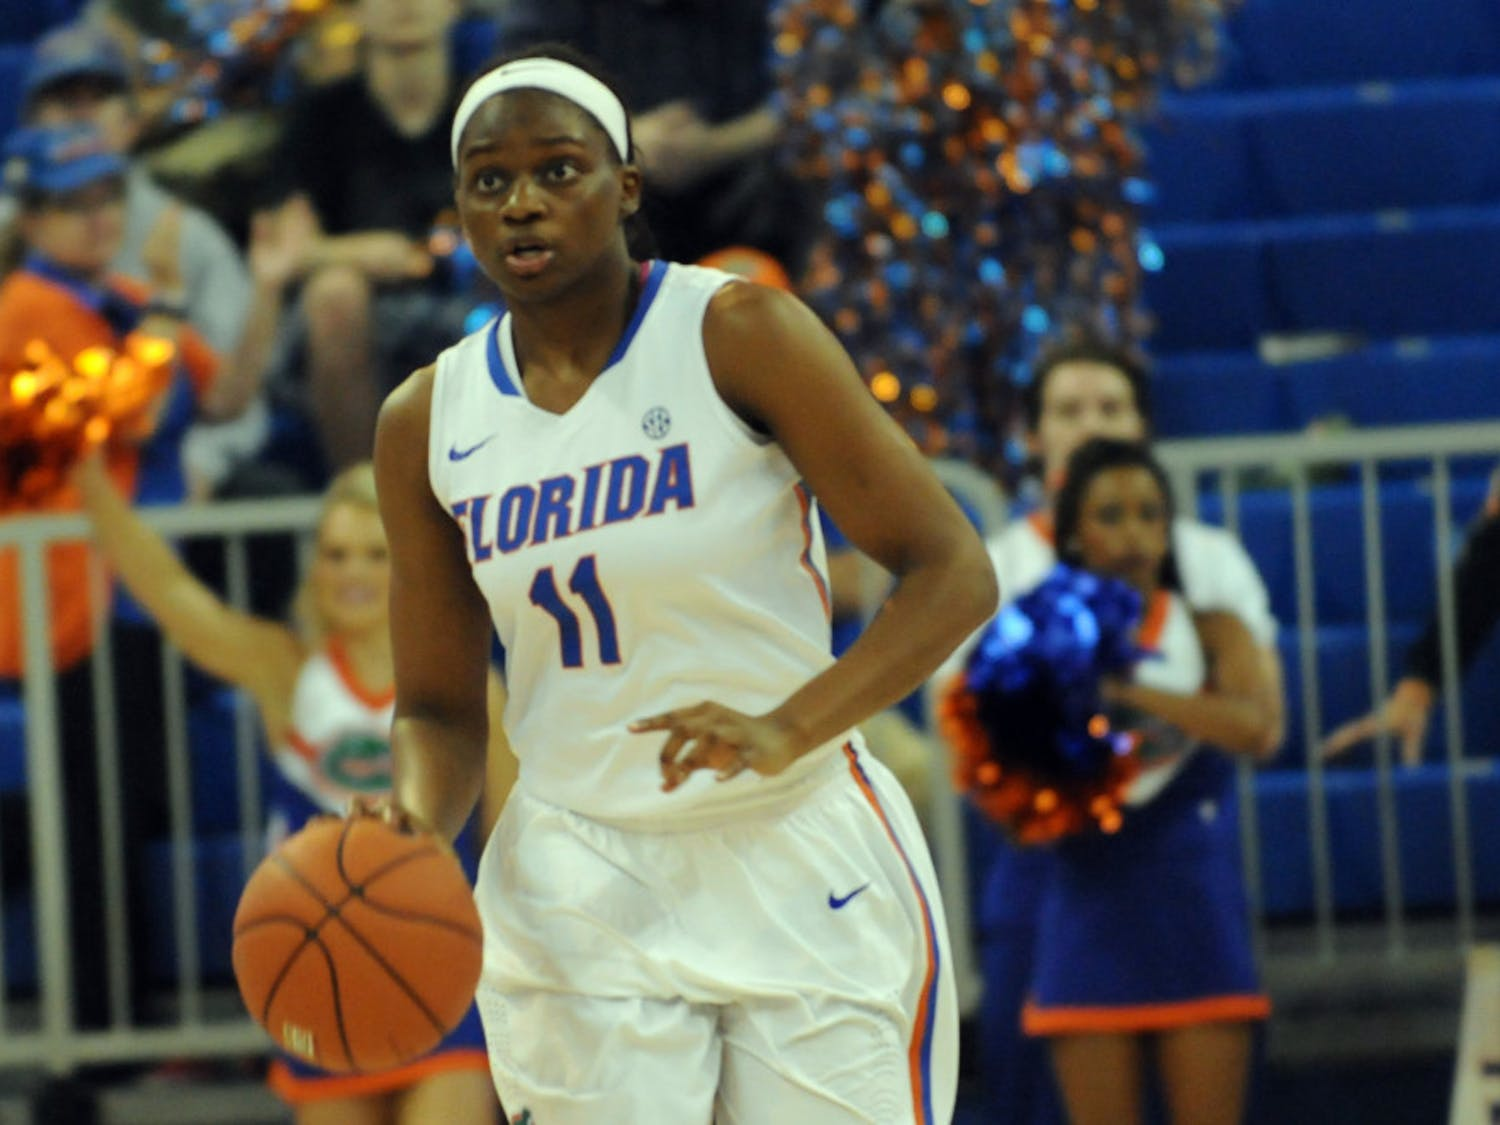 UF guard Dyandria Anderson drives down the court during Florida's win against Savannah State.